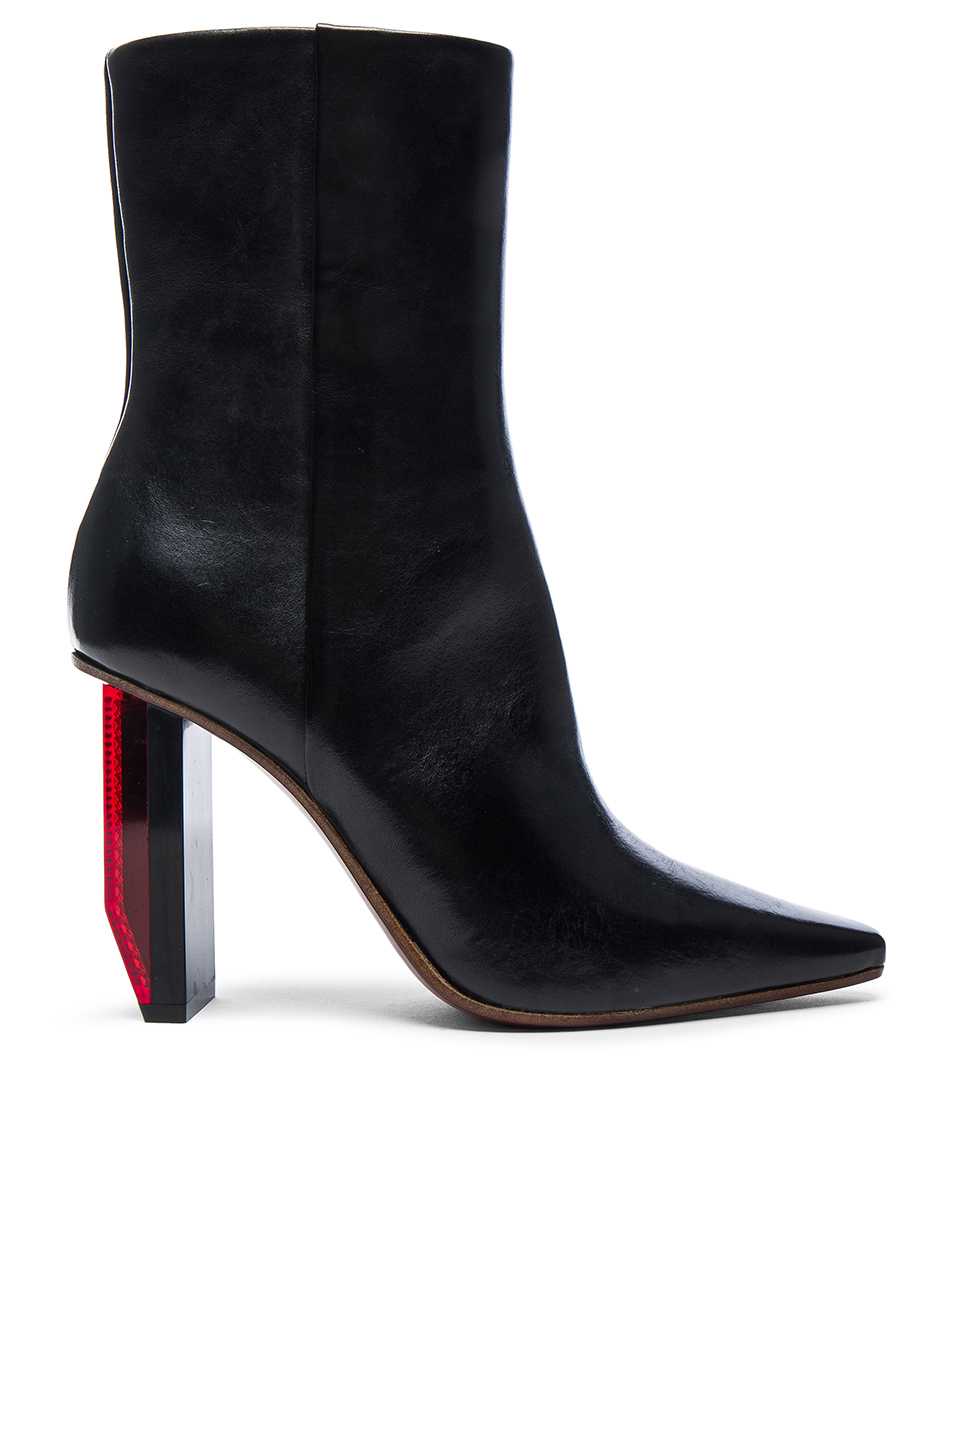 79ae1627b65 VETEMENTS Reflector Leather Ankle Boots  VETEMENTS Reflector Leather Ankle  Boots ...